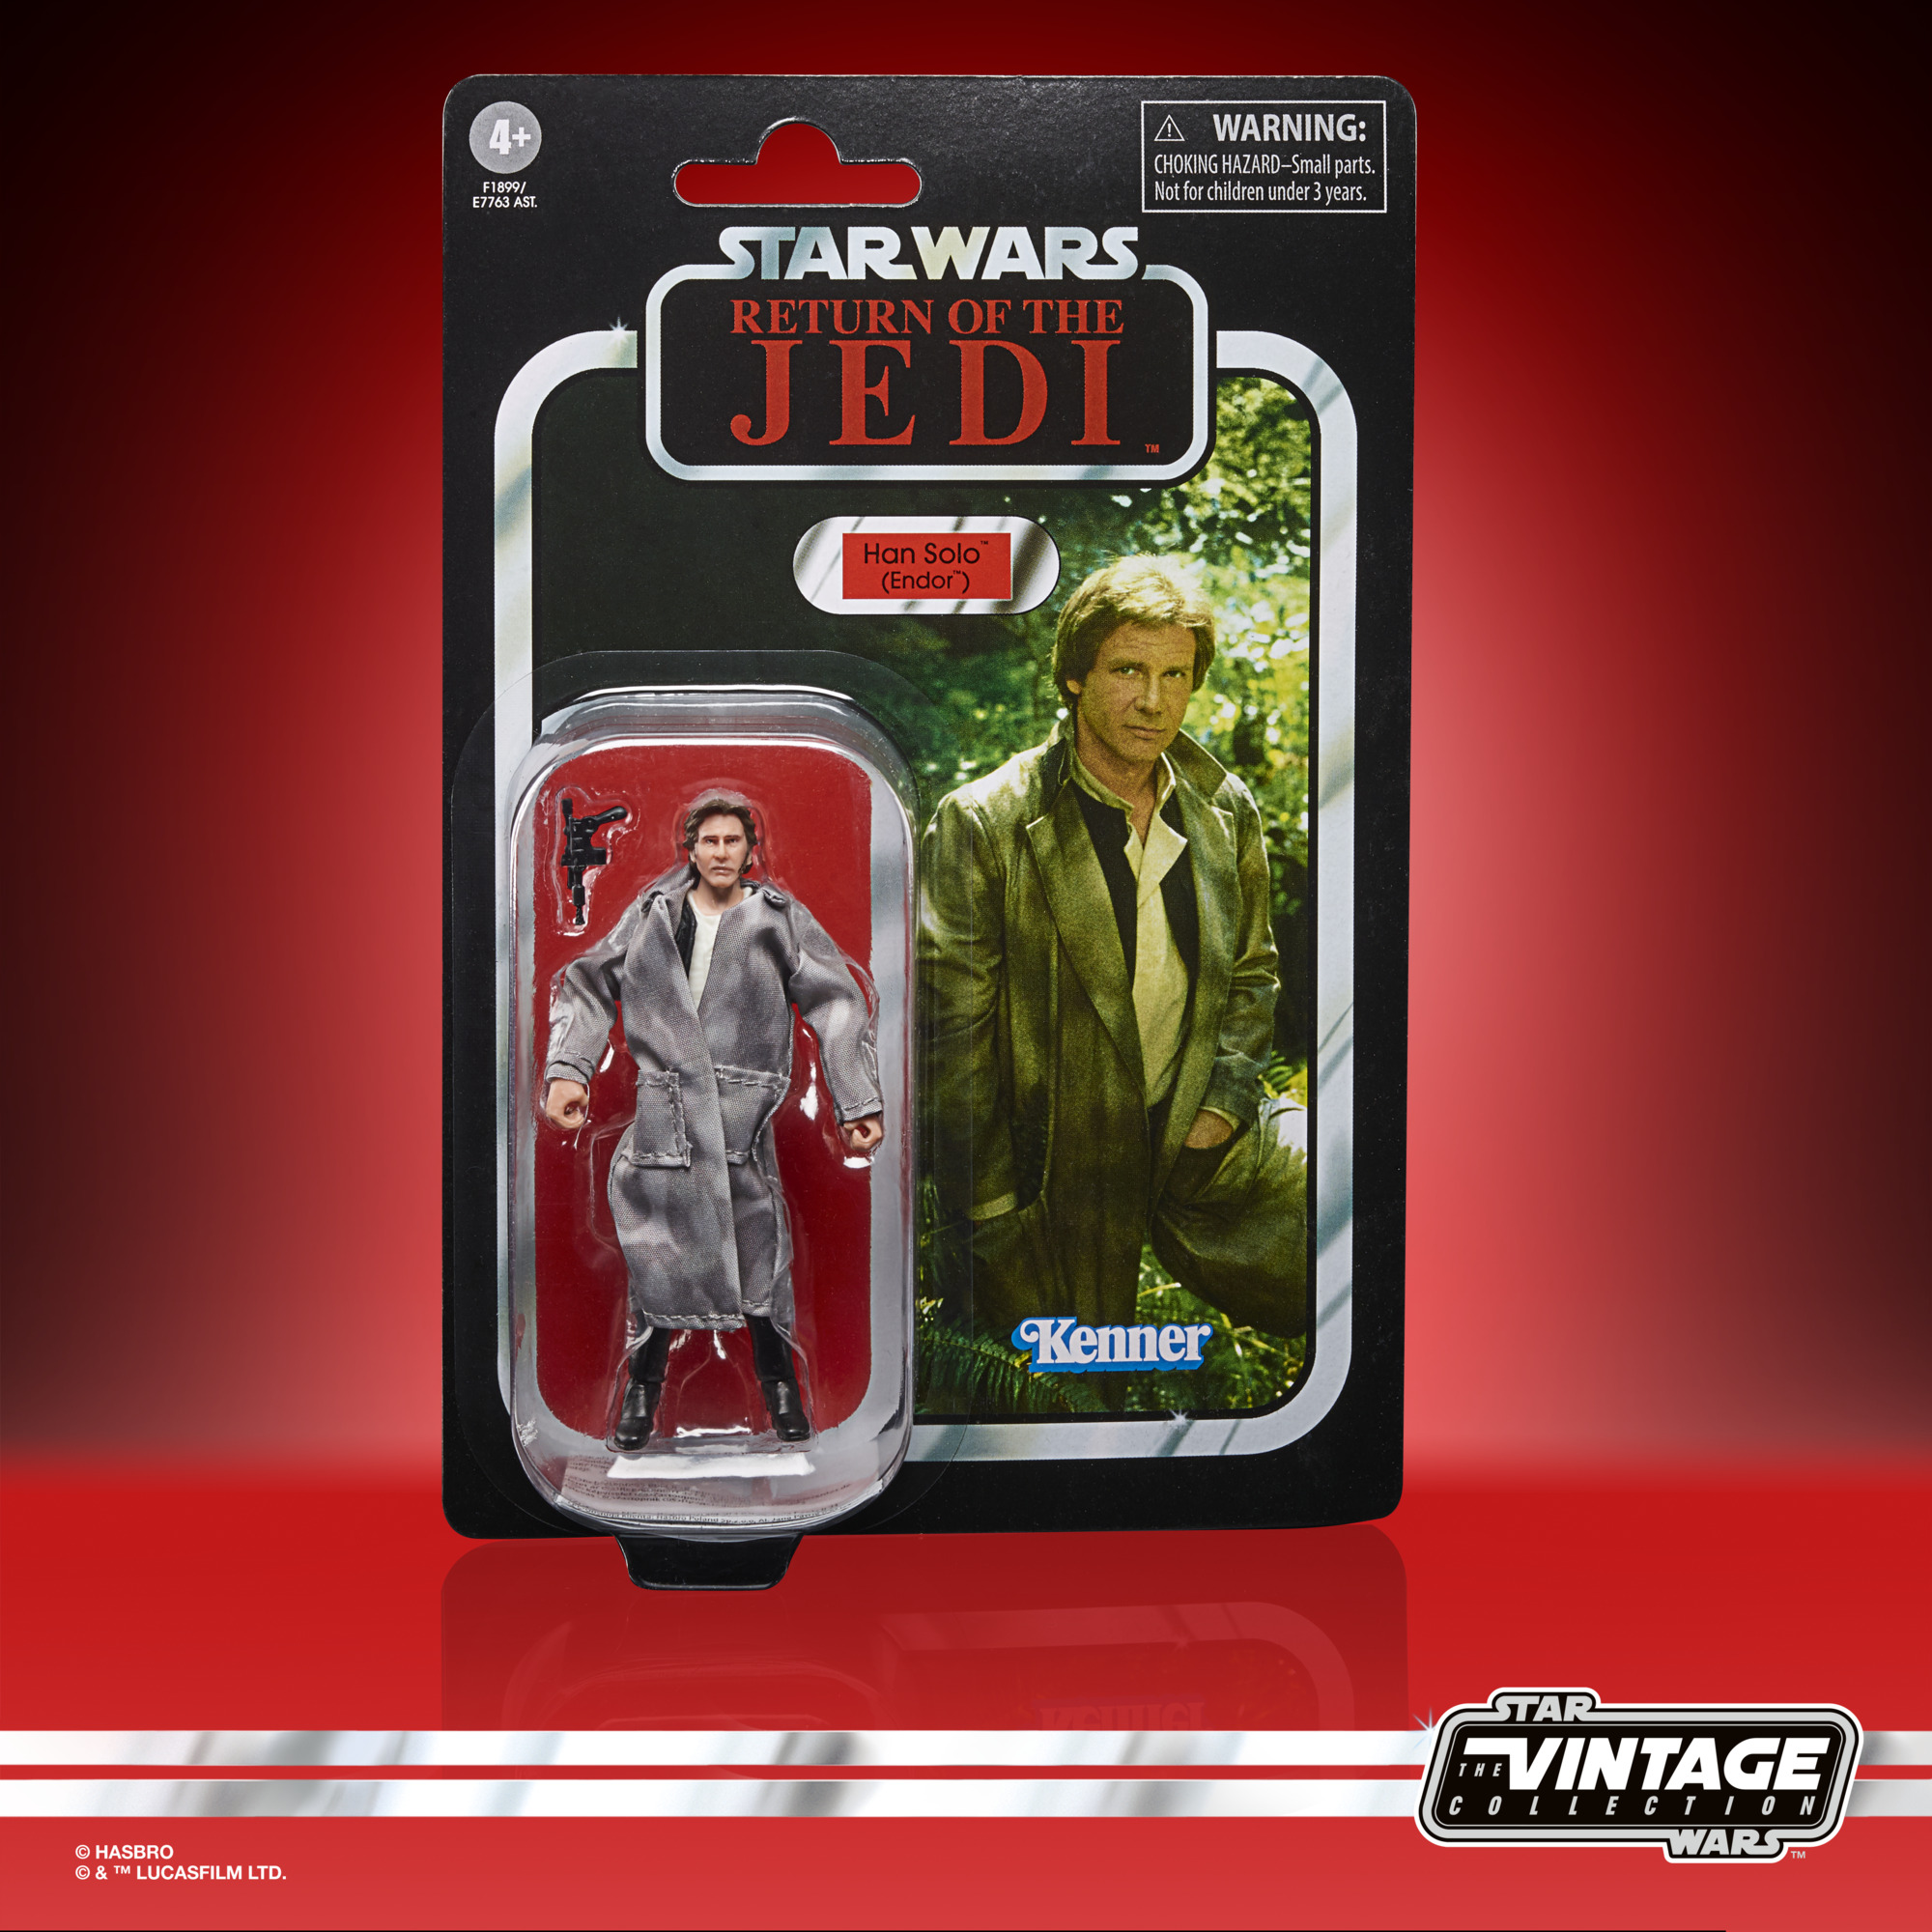 Star Wars The Vintage Collection Han Solo (Endor) 3 3/4-Inch Action Figure F1899 5010993860708